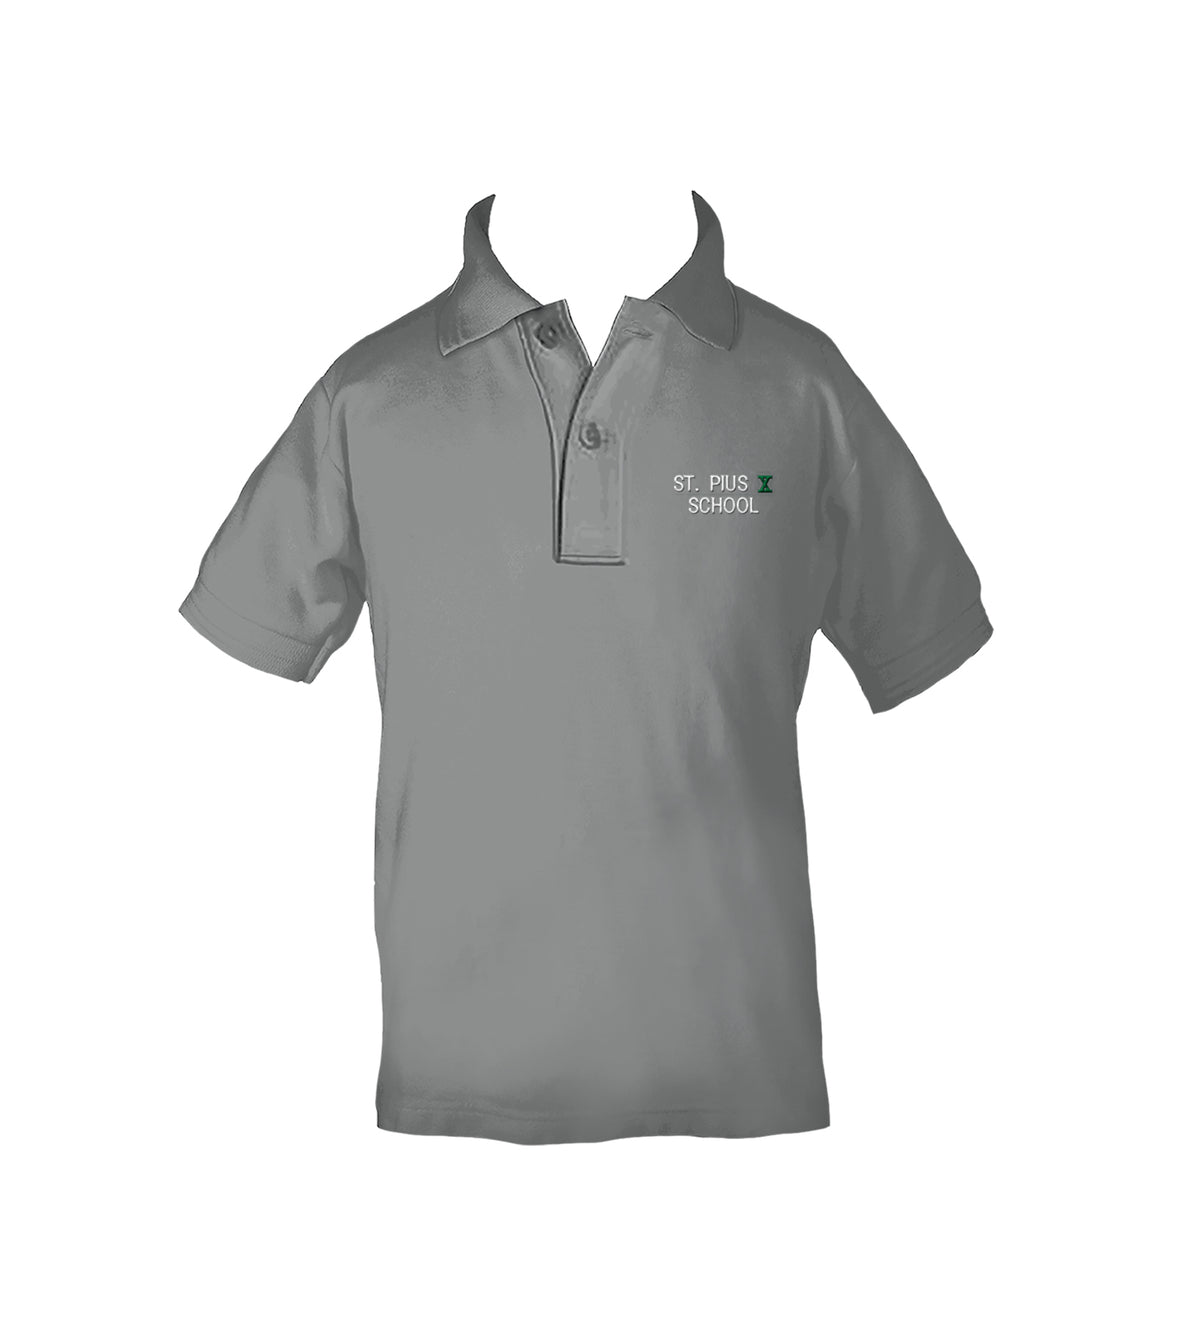 ST. PIUS GOLF SHIRT, UNISEX, SHORT SLEEVE, CHILD